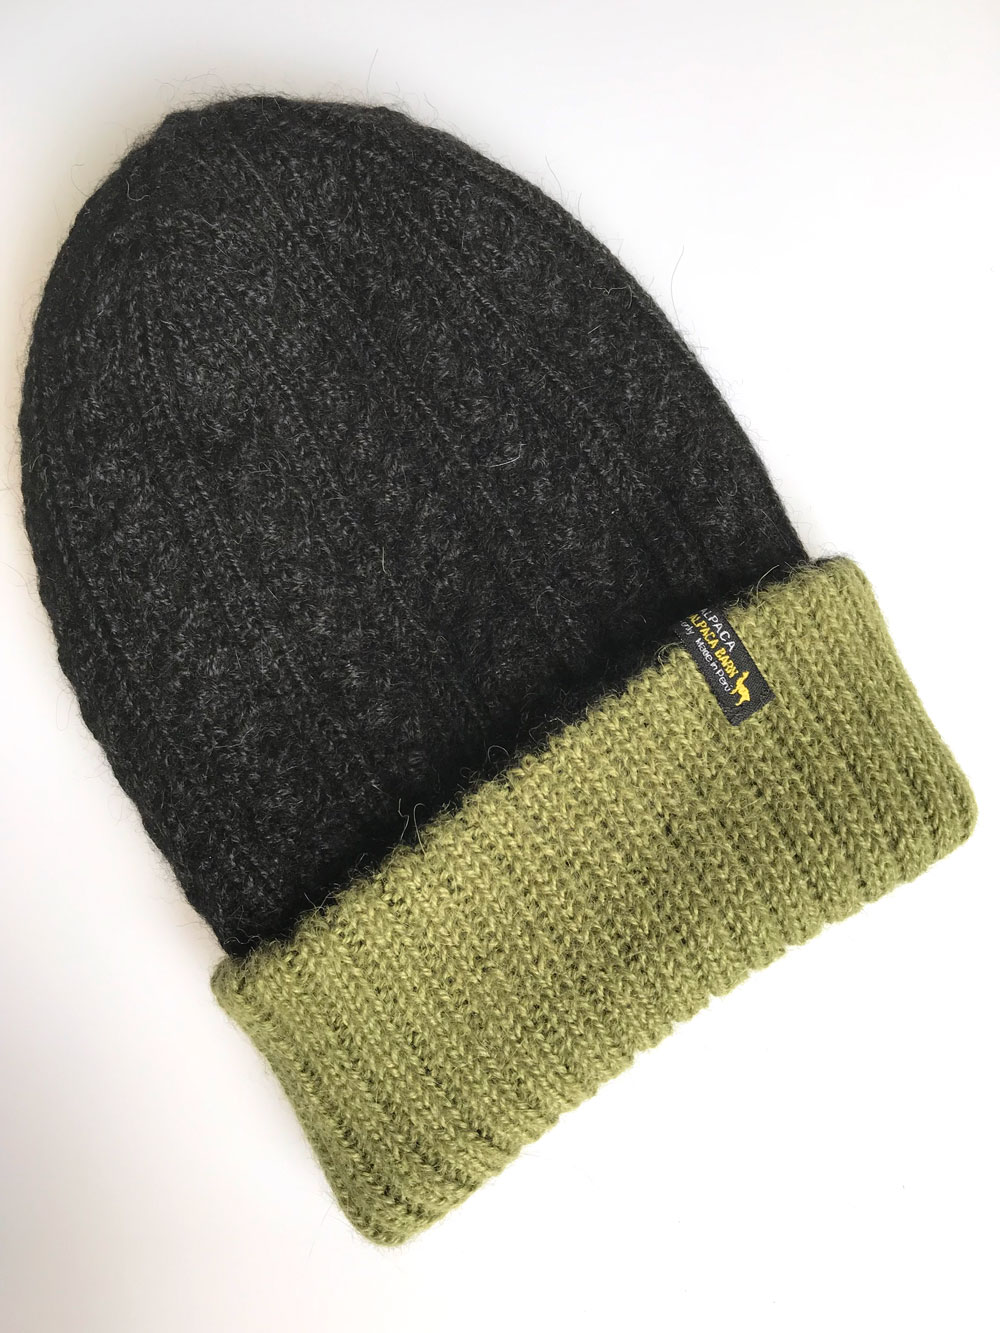 Reversible Hand Knit Alpaca Beanie - Black/Olive